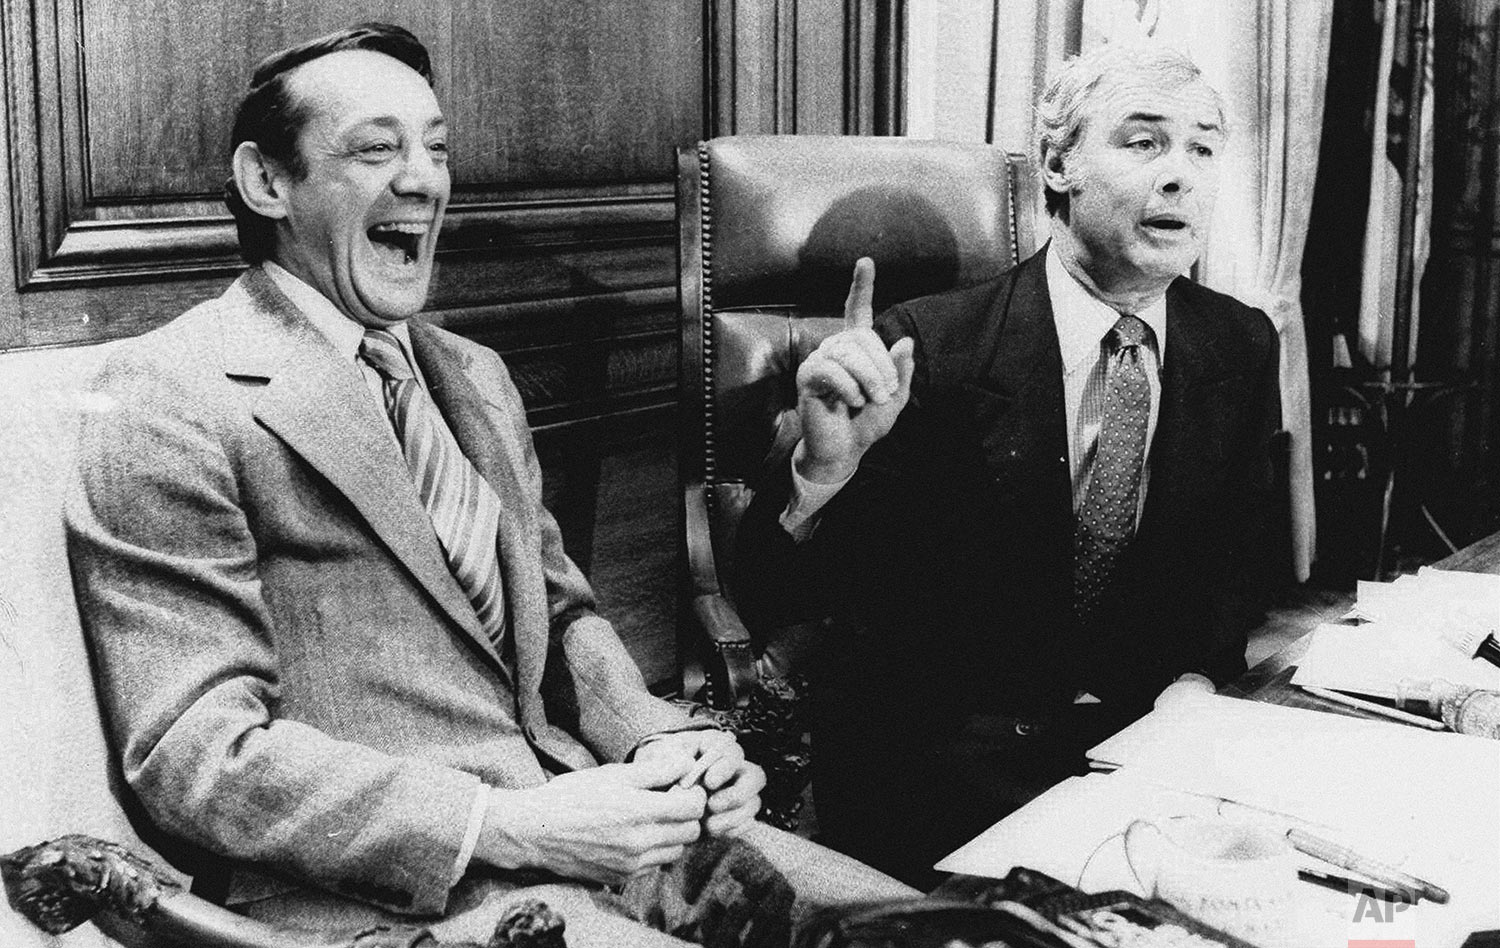 In this April 1977 file photo, San Francisco Supervisor Harvey Milk, left, and Mayor George Moscone sit together in the mayor's office during the signing of the city's gay rights bill. (AP Photo)